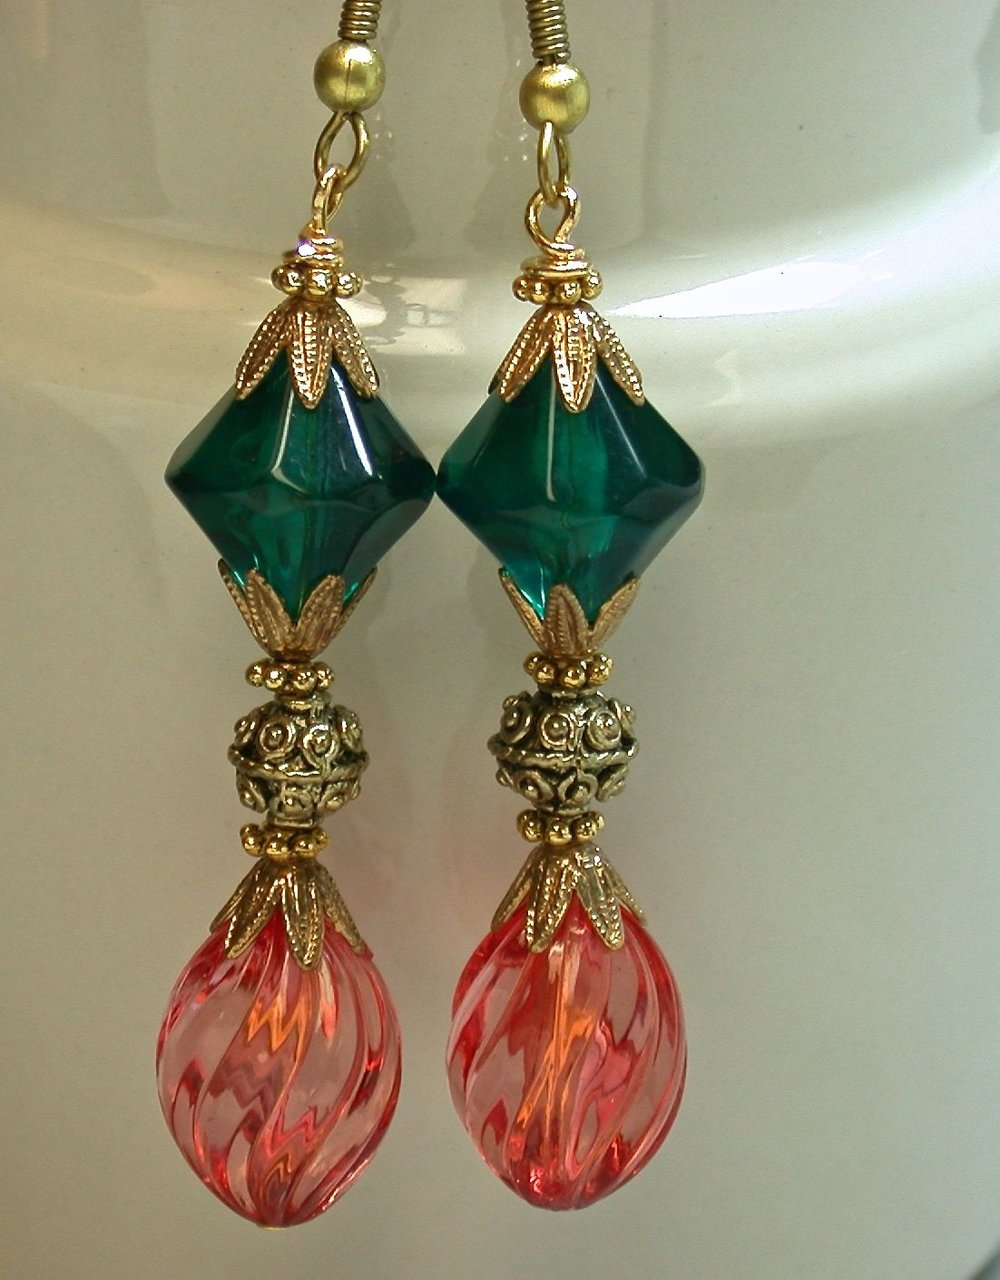 Vintage Japanese Lucite Bead Earrings